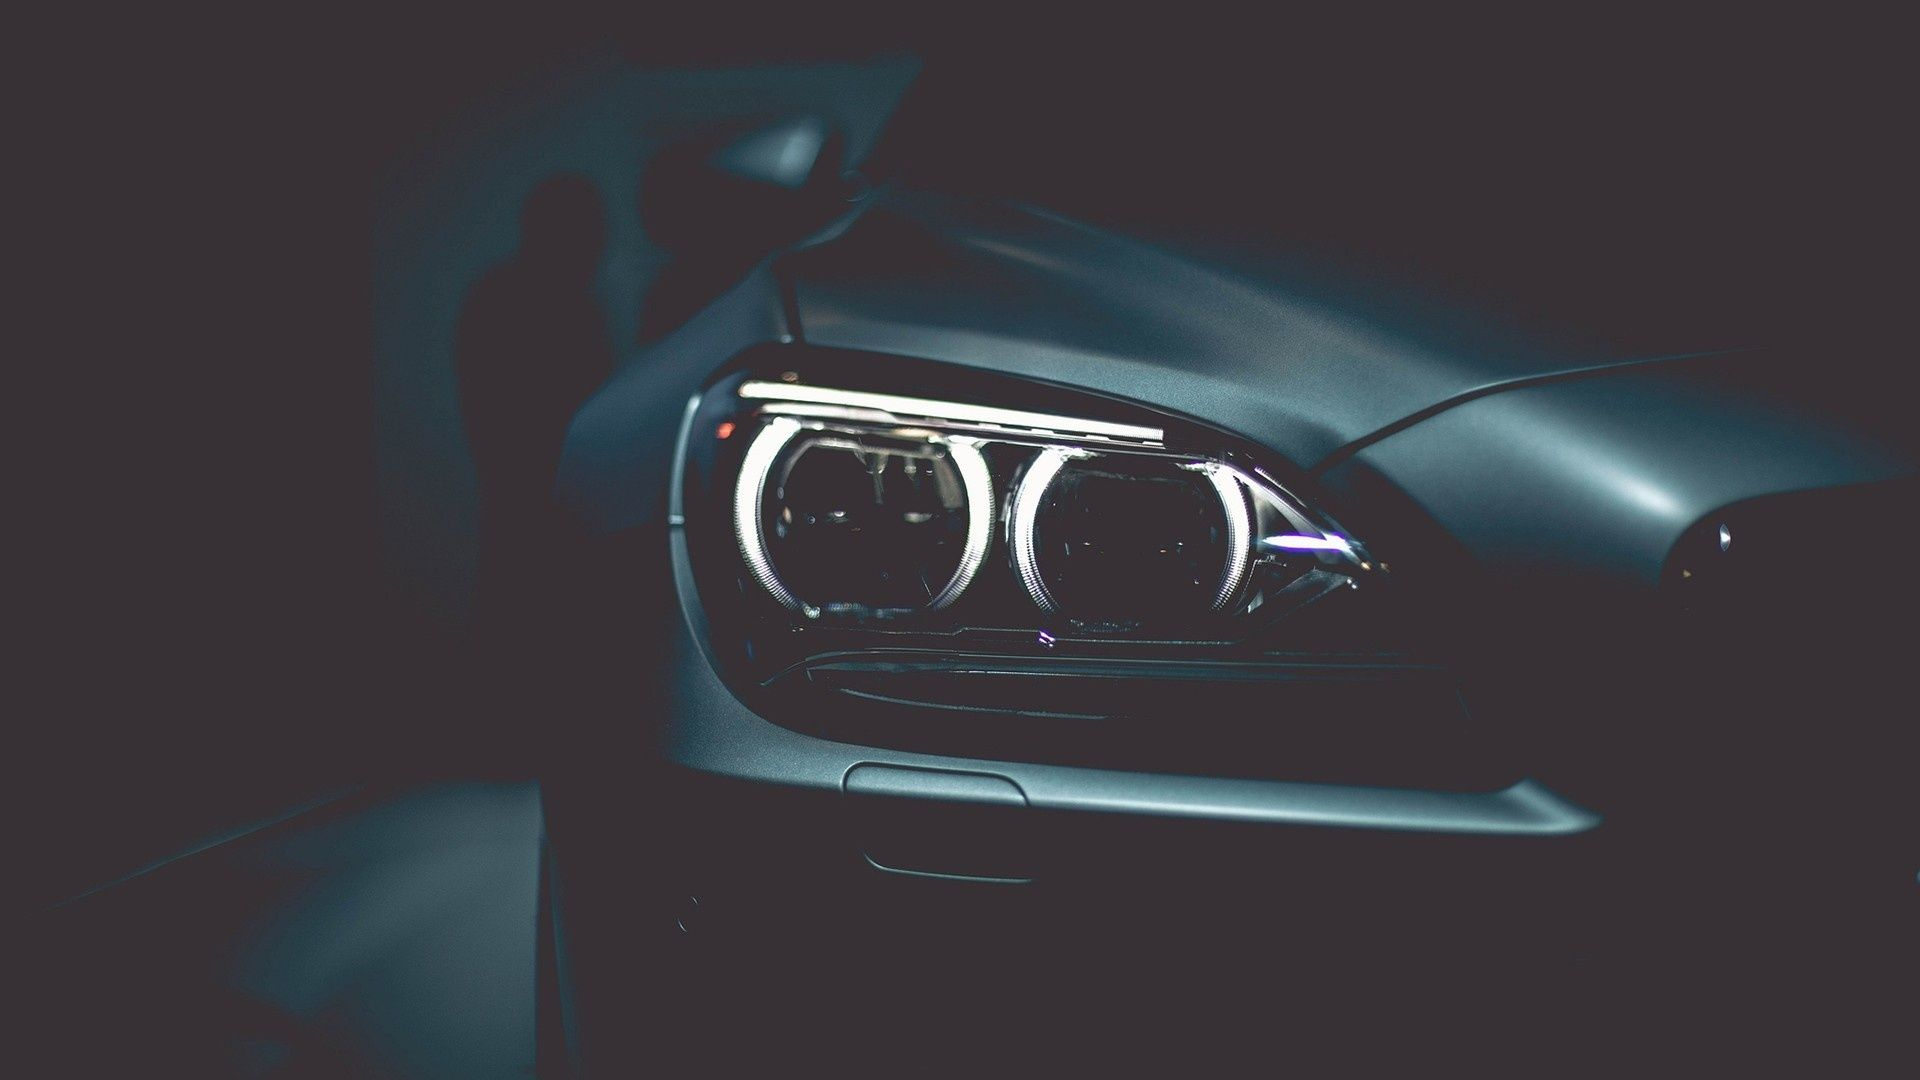 1920x1080 Wallpaper Bmw Headlights Black Style Car Photography